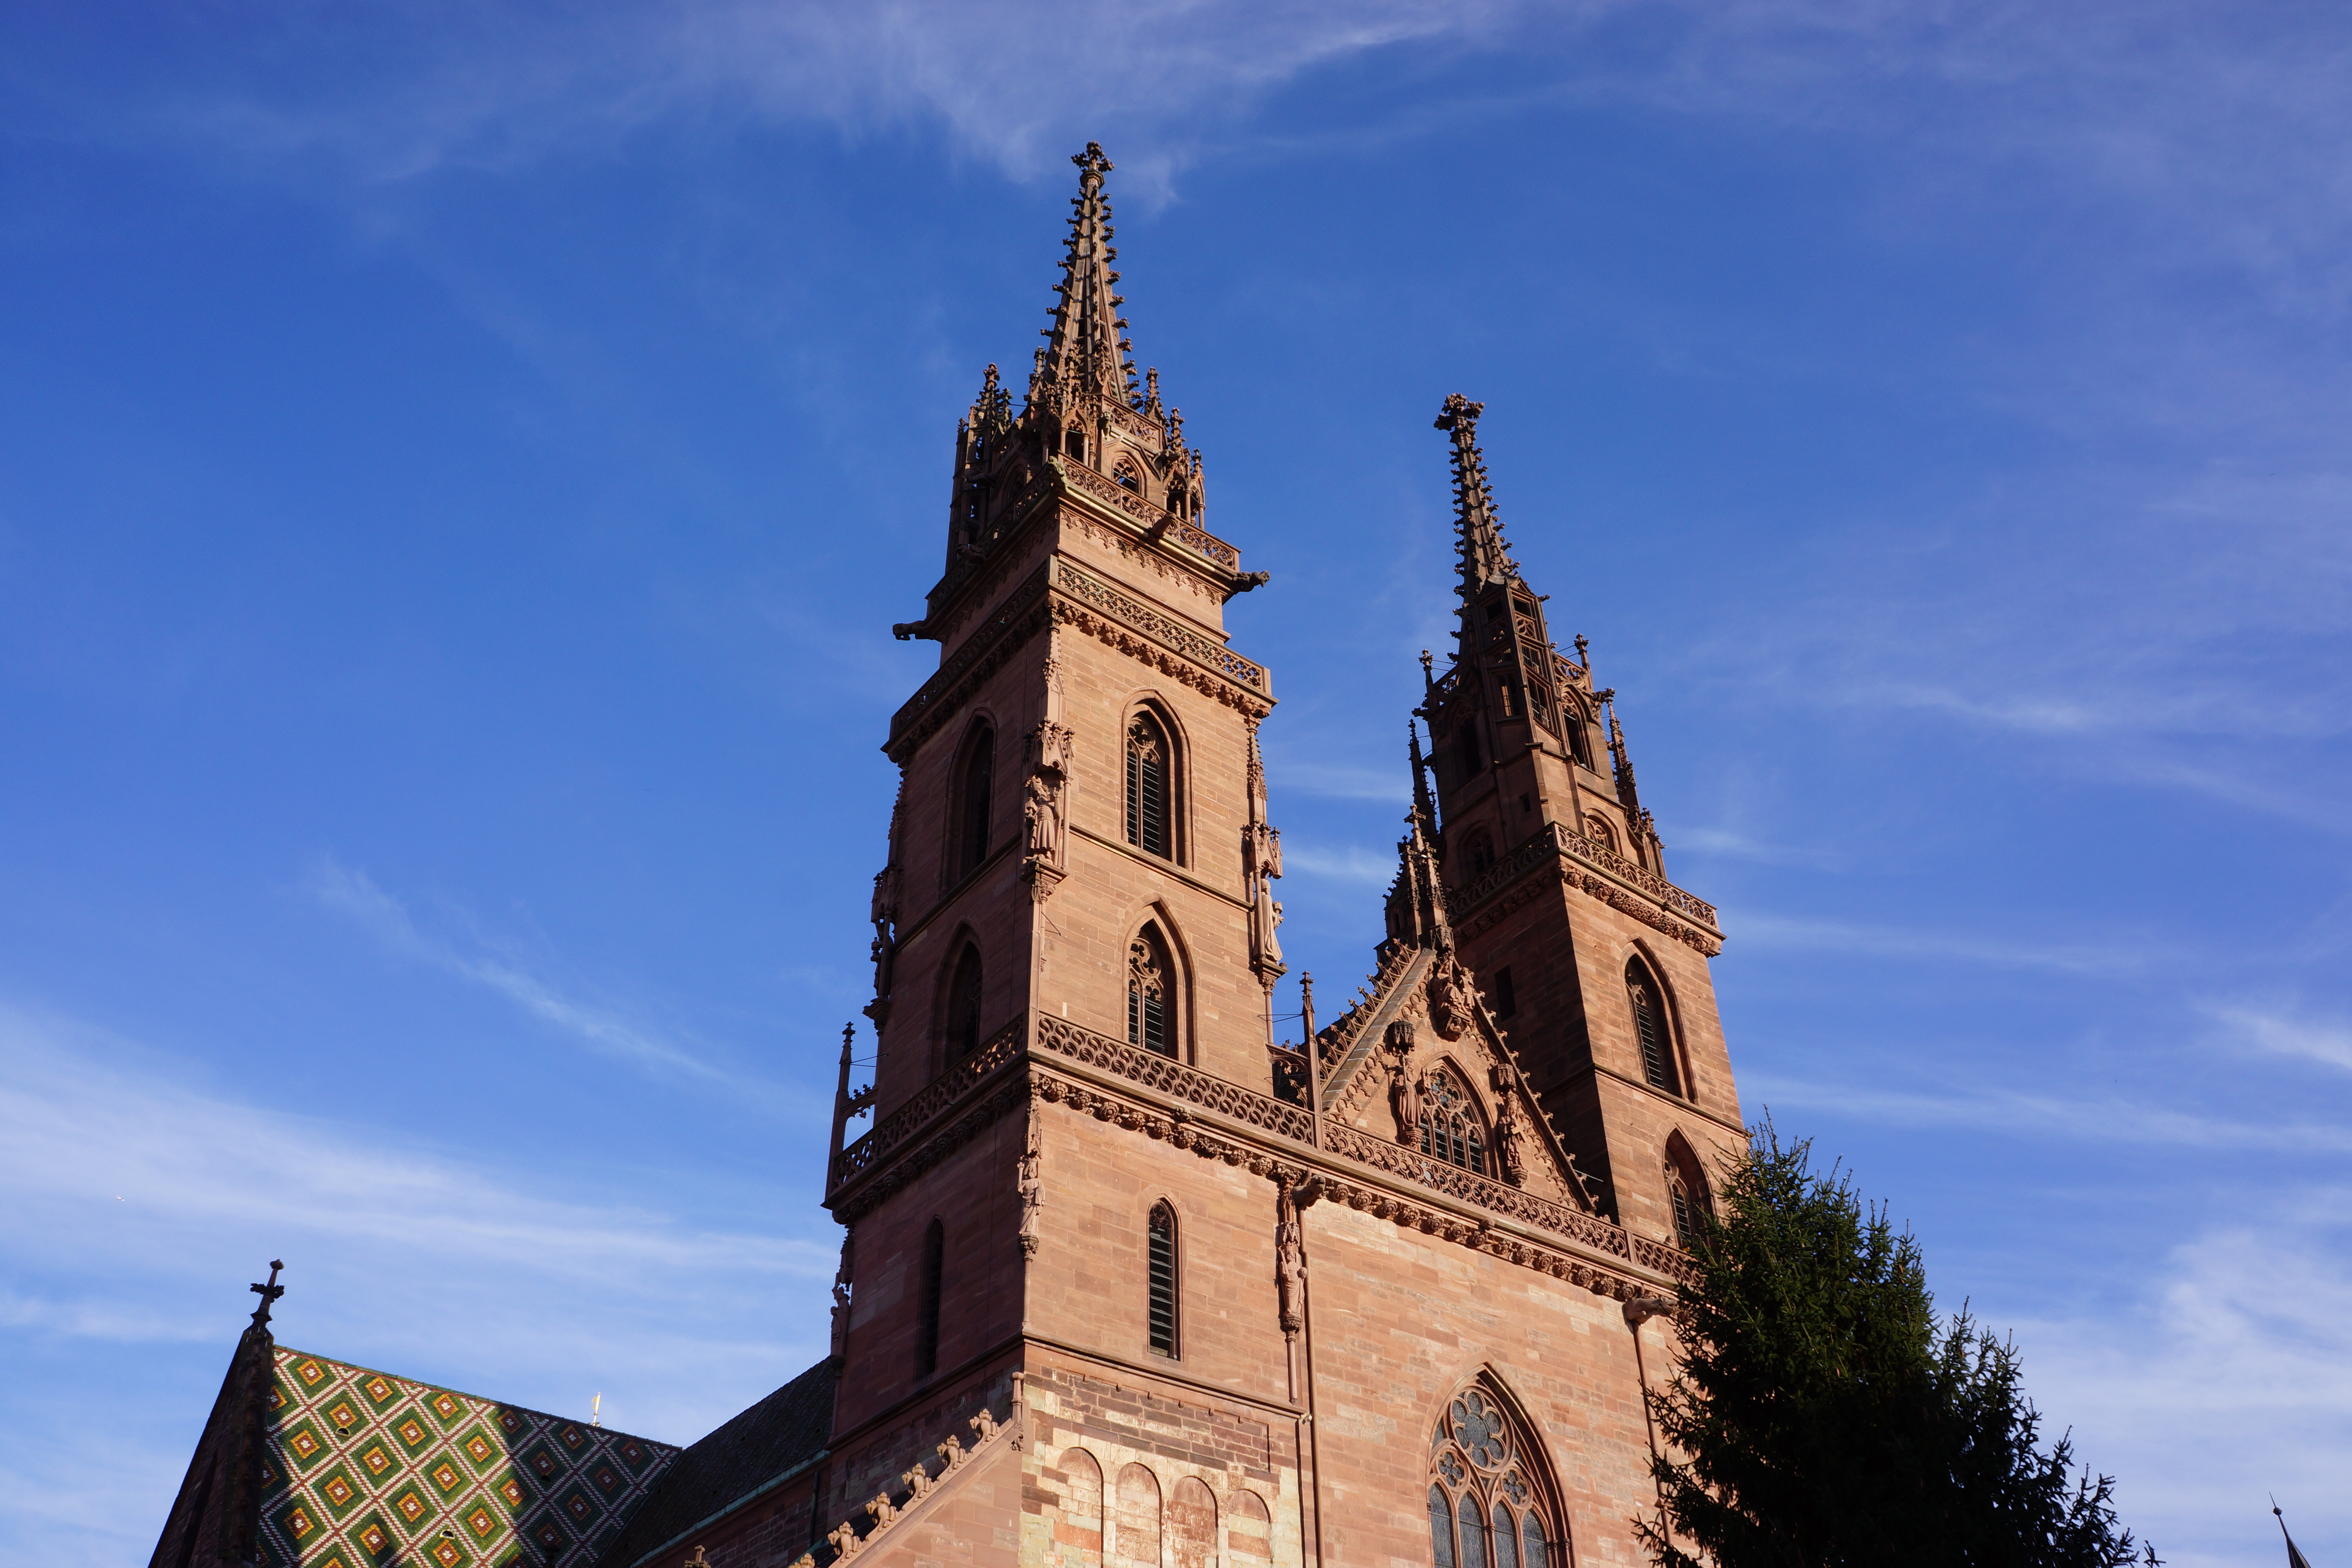 Basel Münster - Photo provided by Nik Clare